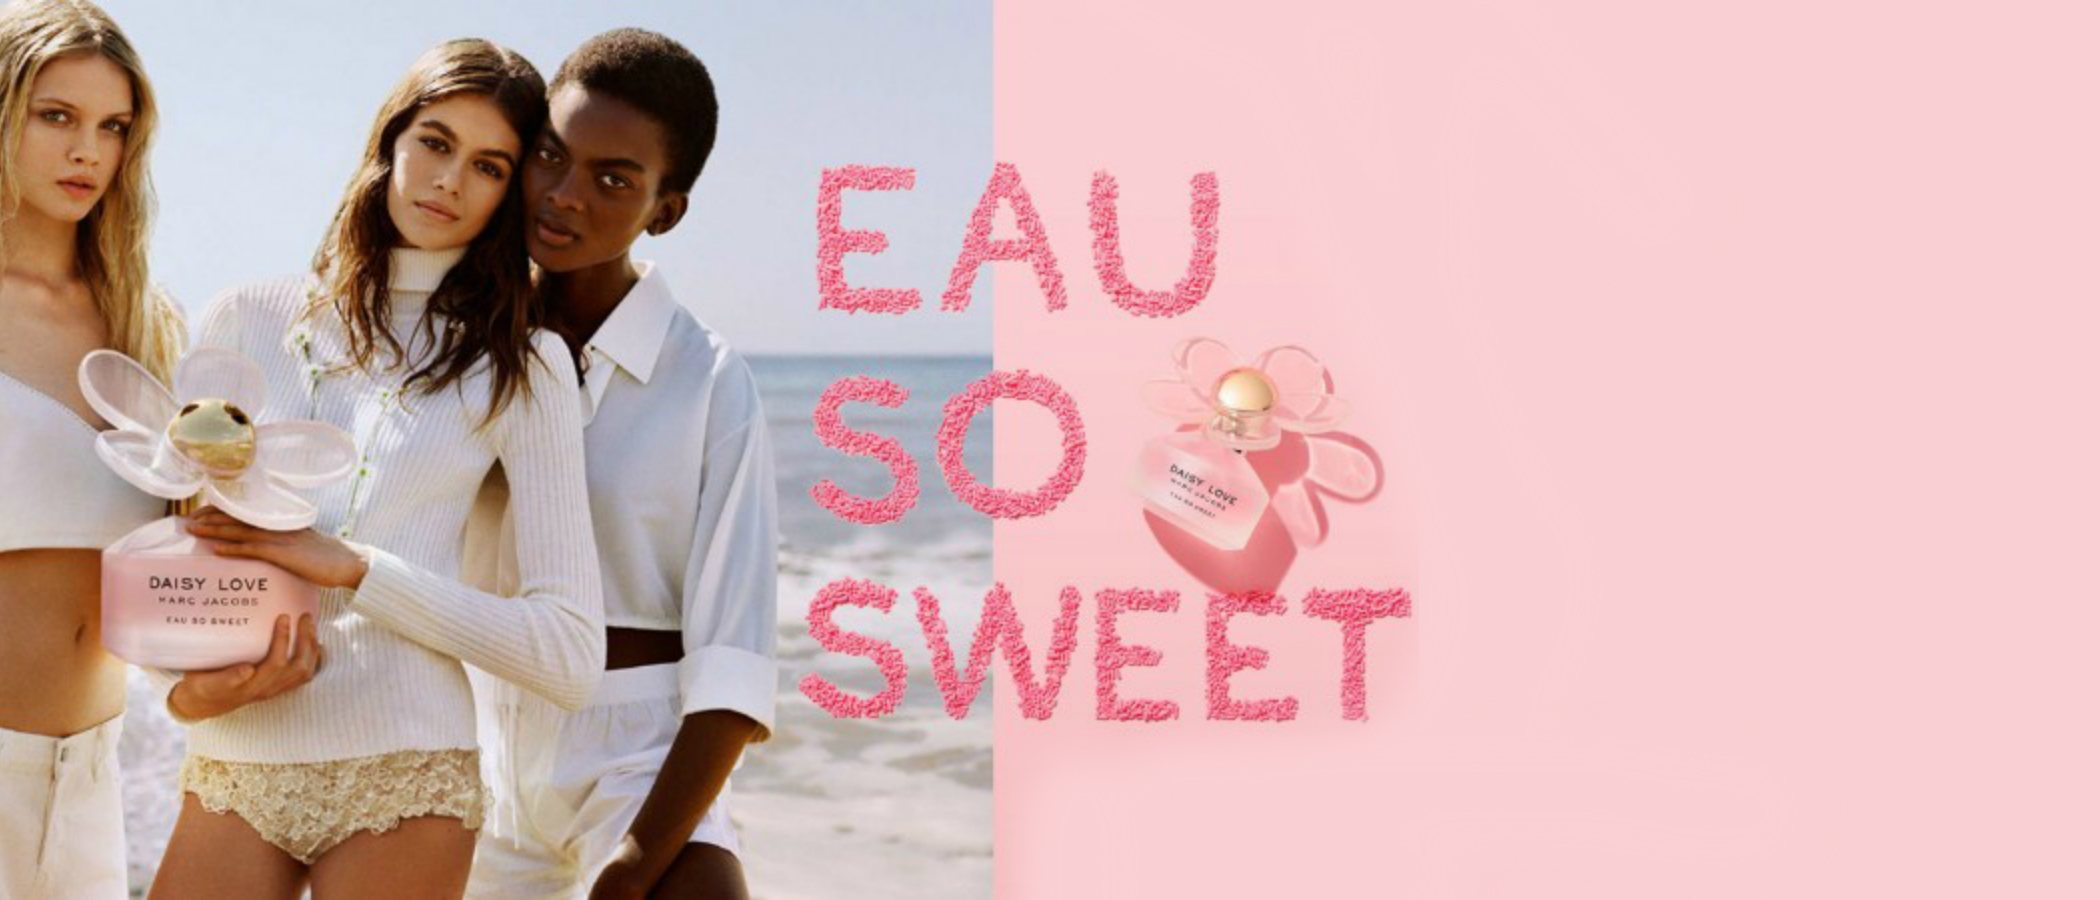 'Daisy Love Eau So Sweet', la nueva fragancia femenina de Marc Jacobs